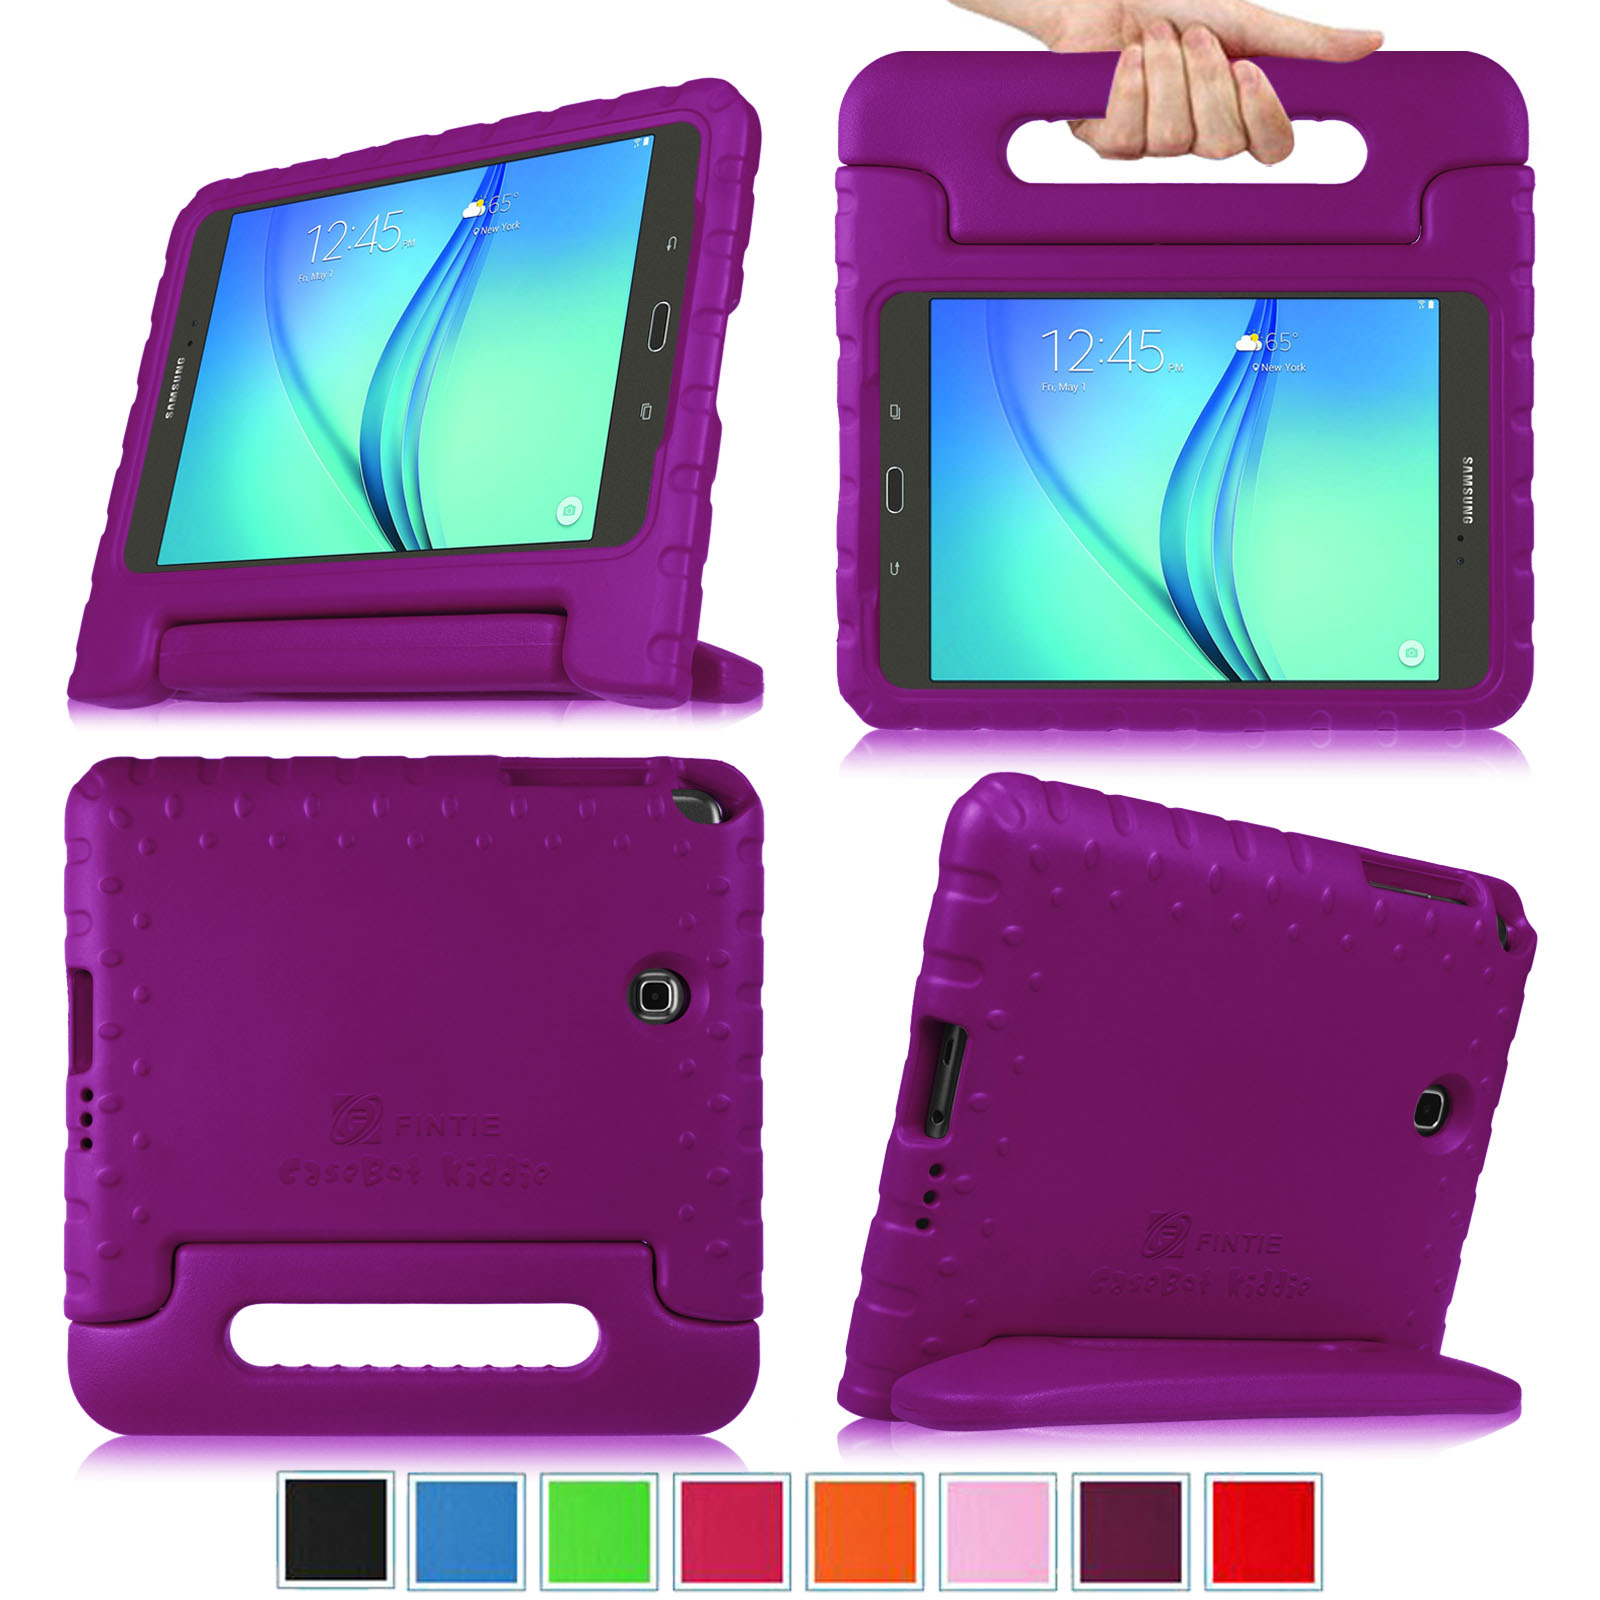 Samsung Galaxy Tab A 8.0 Inch SM-T350 Tablet Kiddie Case - Fintie Lightweight Shock Proof Handle Stand Cover, Purple